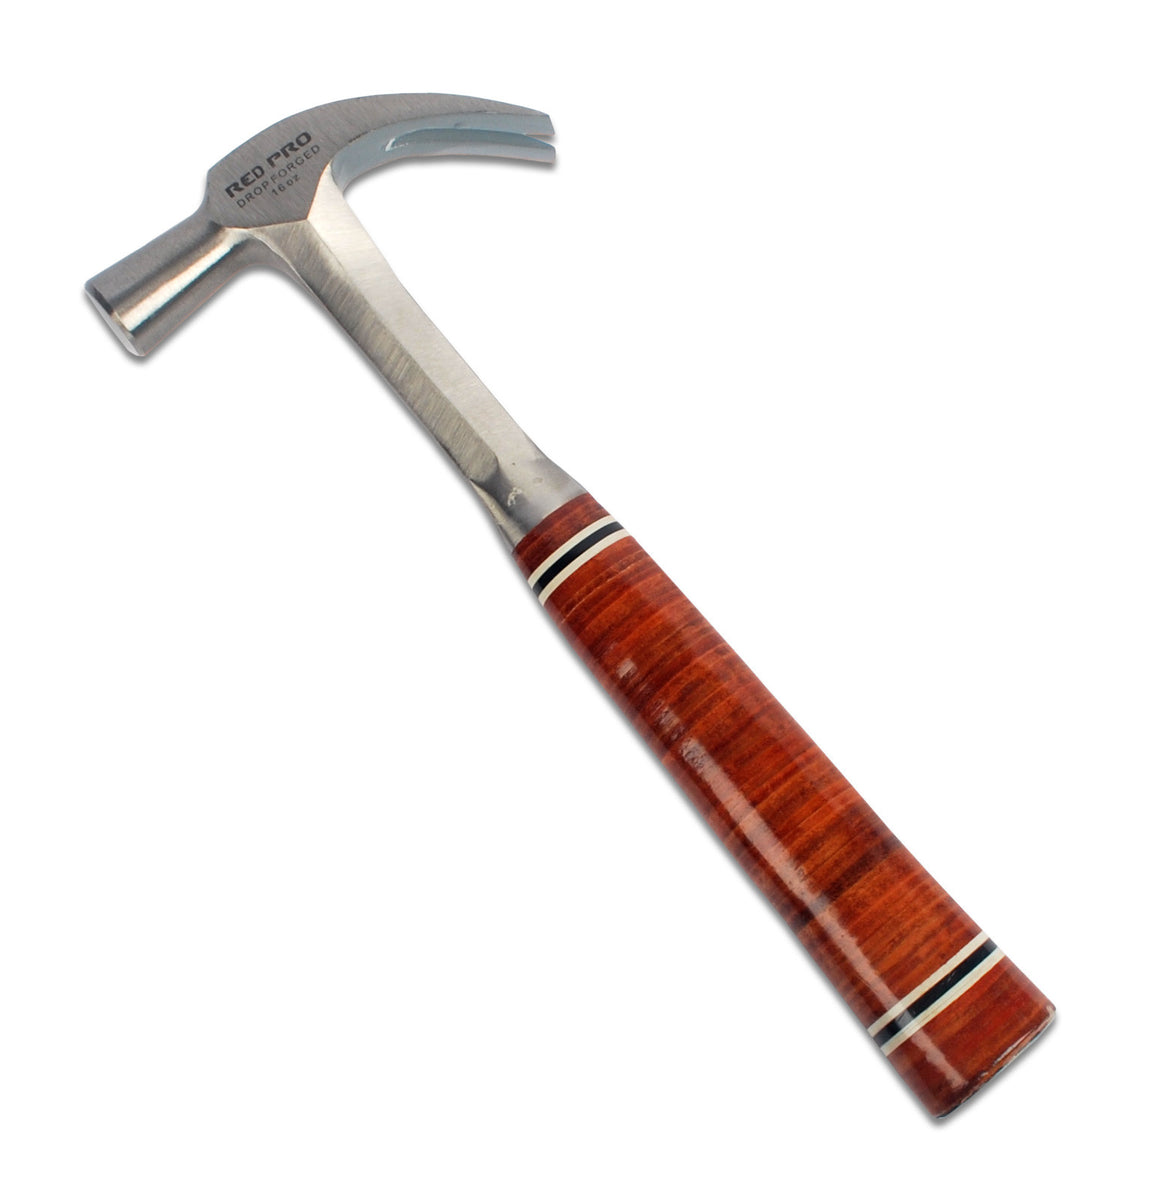 Red Pro Tools Leather Grip Claw Hammer 16oz